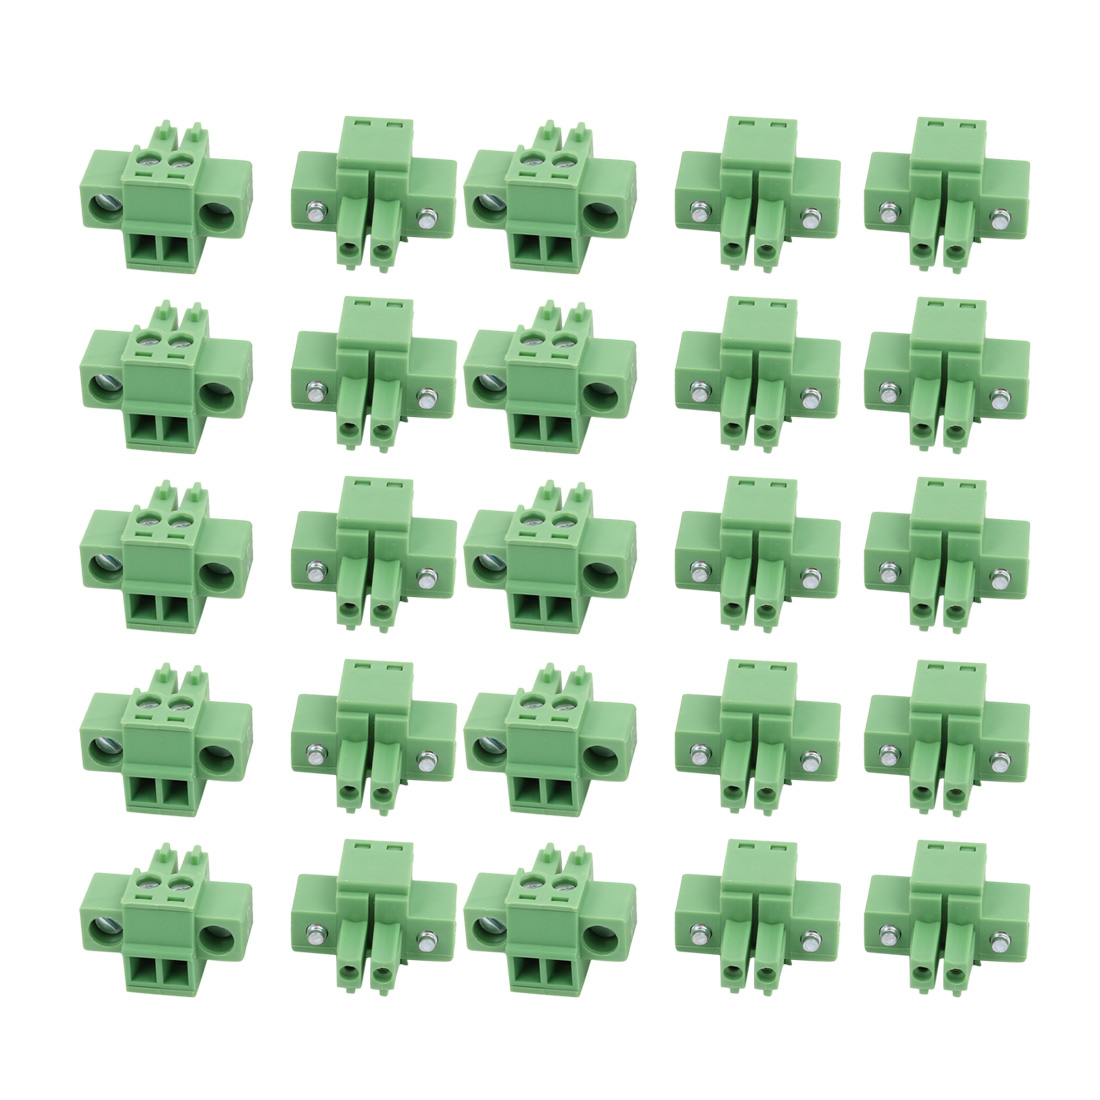 25Pcs LC1M 3.5mm Pitch 2P PCB Mounting Terminal Block Wire Connector